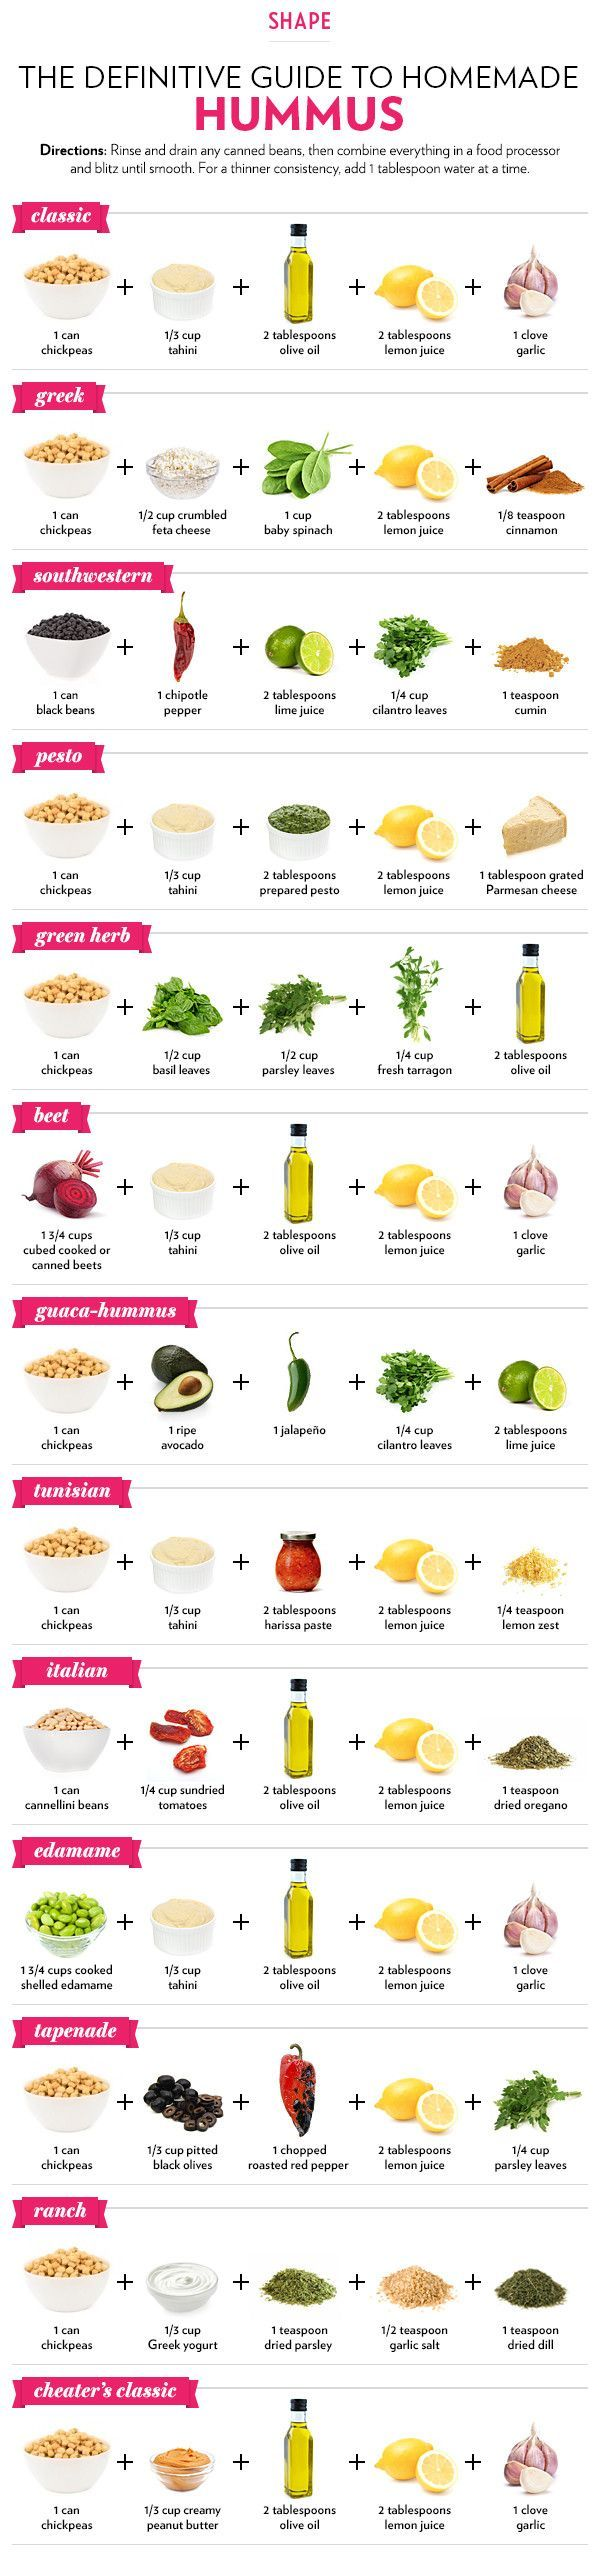 Hummus Recipes - awesome!